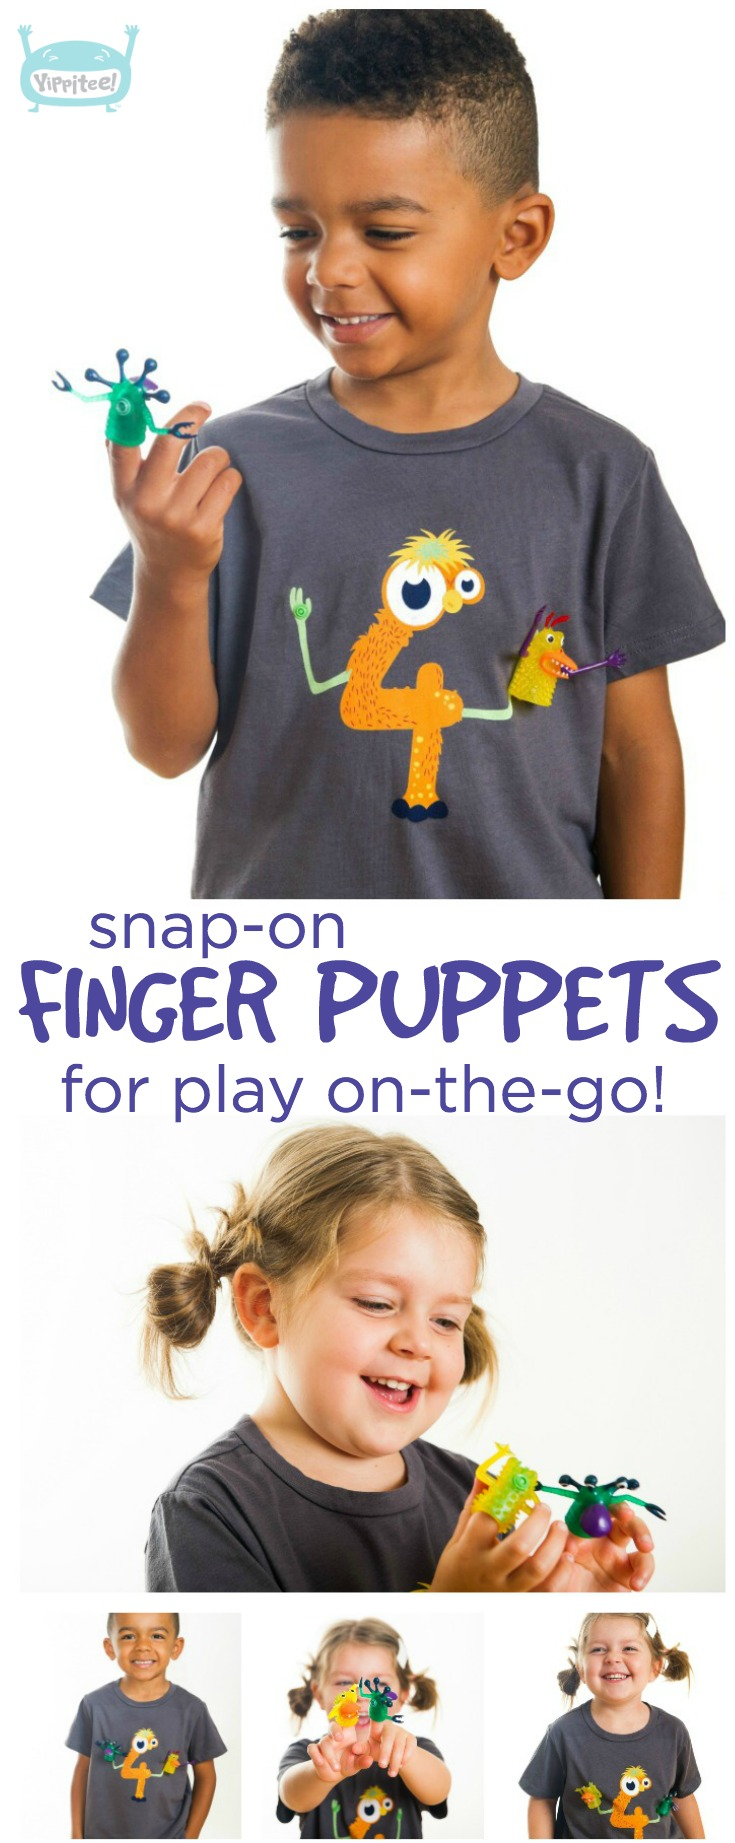 The coolest monster 4th birthday shirt there ever was! Detachable finger puppets snap on and off to keep your kiddo entertained anywhere. // 4th birthday shirt, 4 year old birthday shirt, fourth birthday shirt, four year old birthday shirt, 4th birthday t-shirt, kids birthday shirts, birthday girl shirt, birthday boy shirt, toddler birthday shirt #birthdayshirt #kidsbirthdayshirts #birthdaygirl #birthdayboy #toddlerbirthday #monsterparty #monsterbirthday